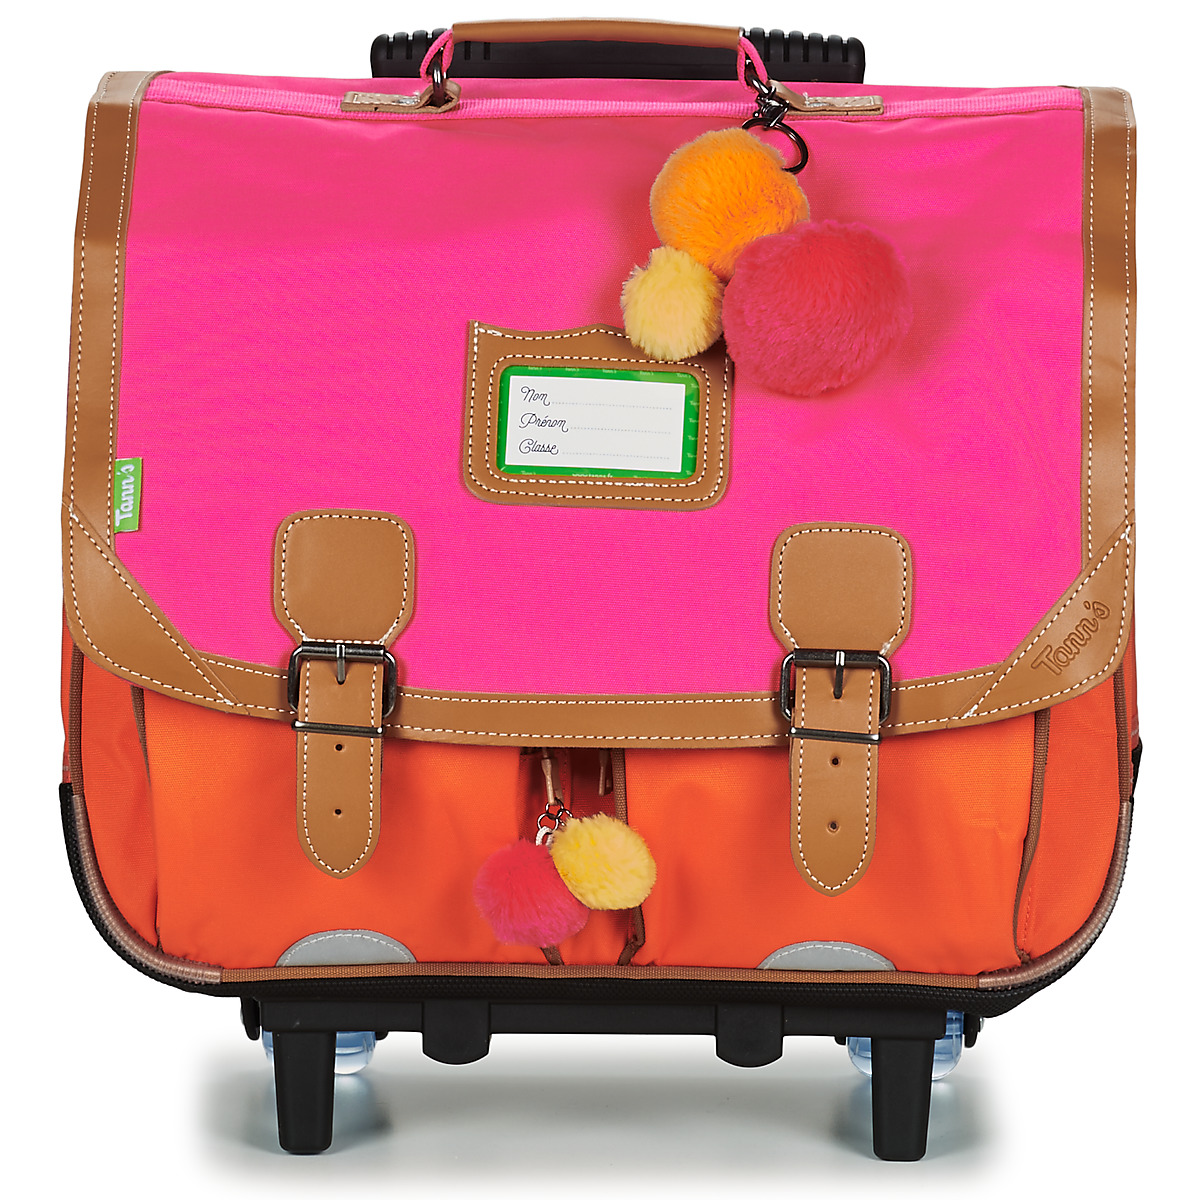 Tann's FRIDA TROLLEY CARTABLE Rose / Orange